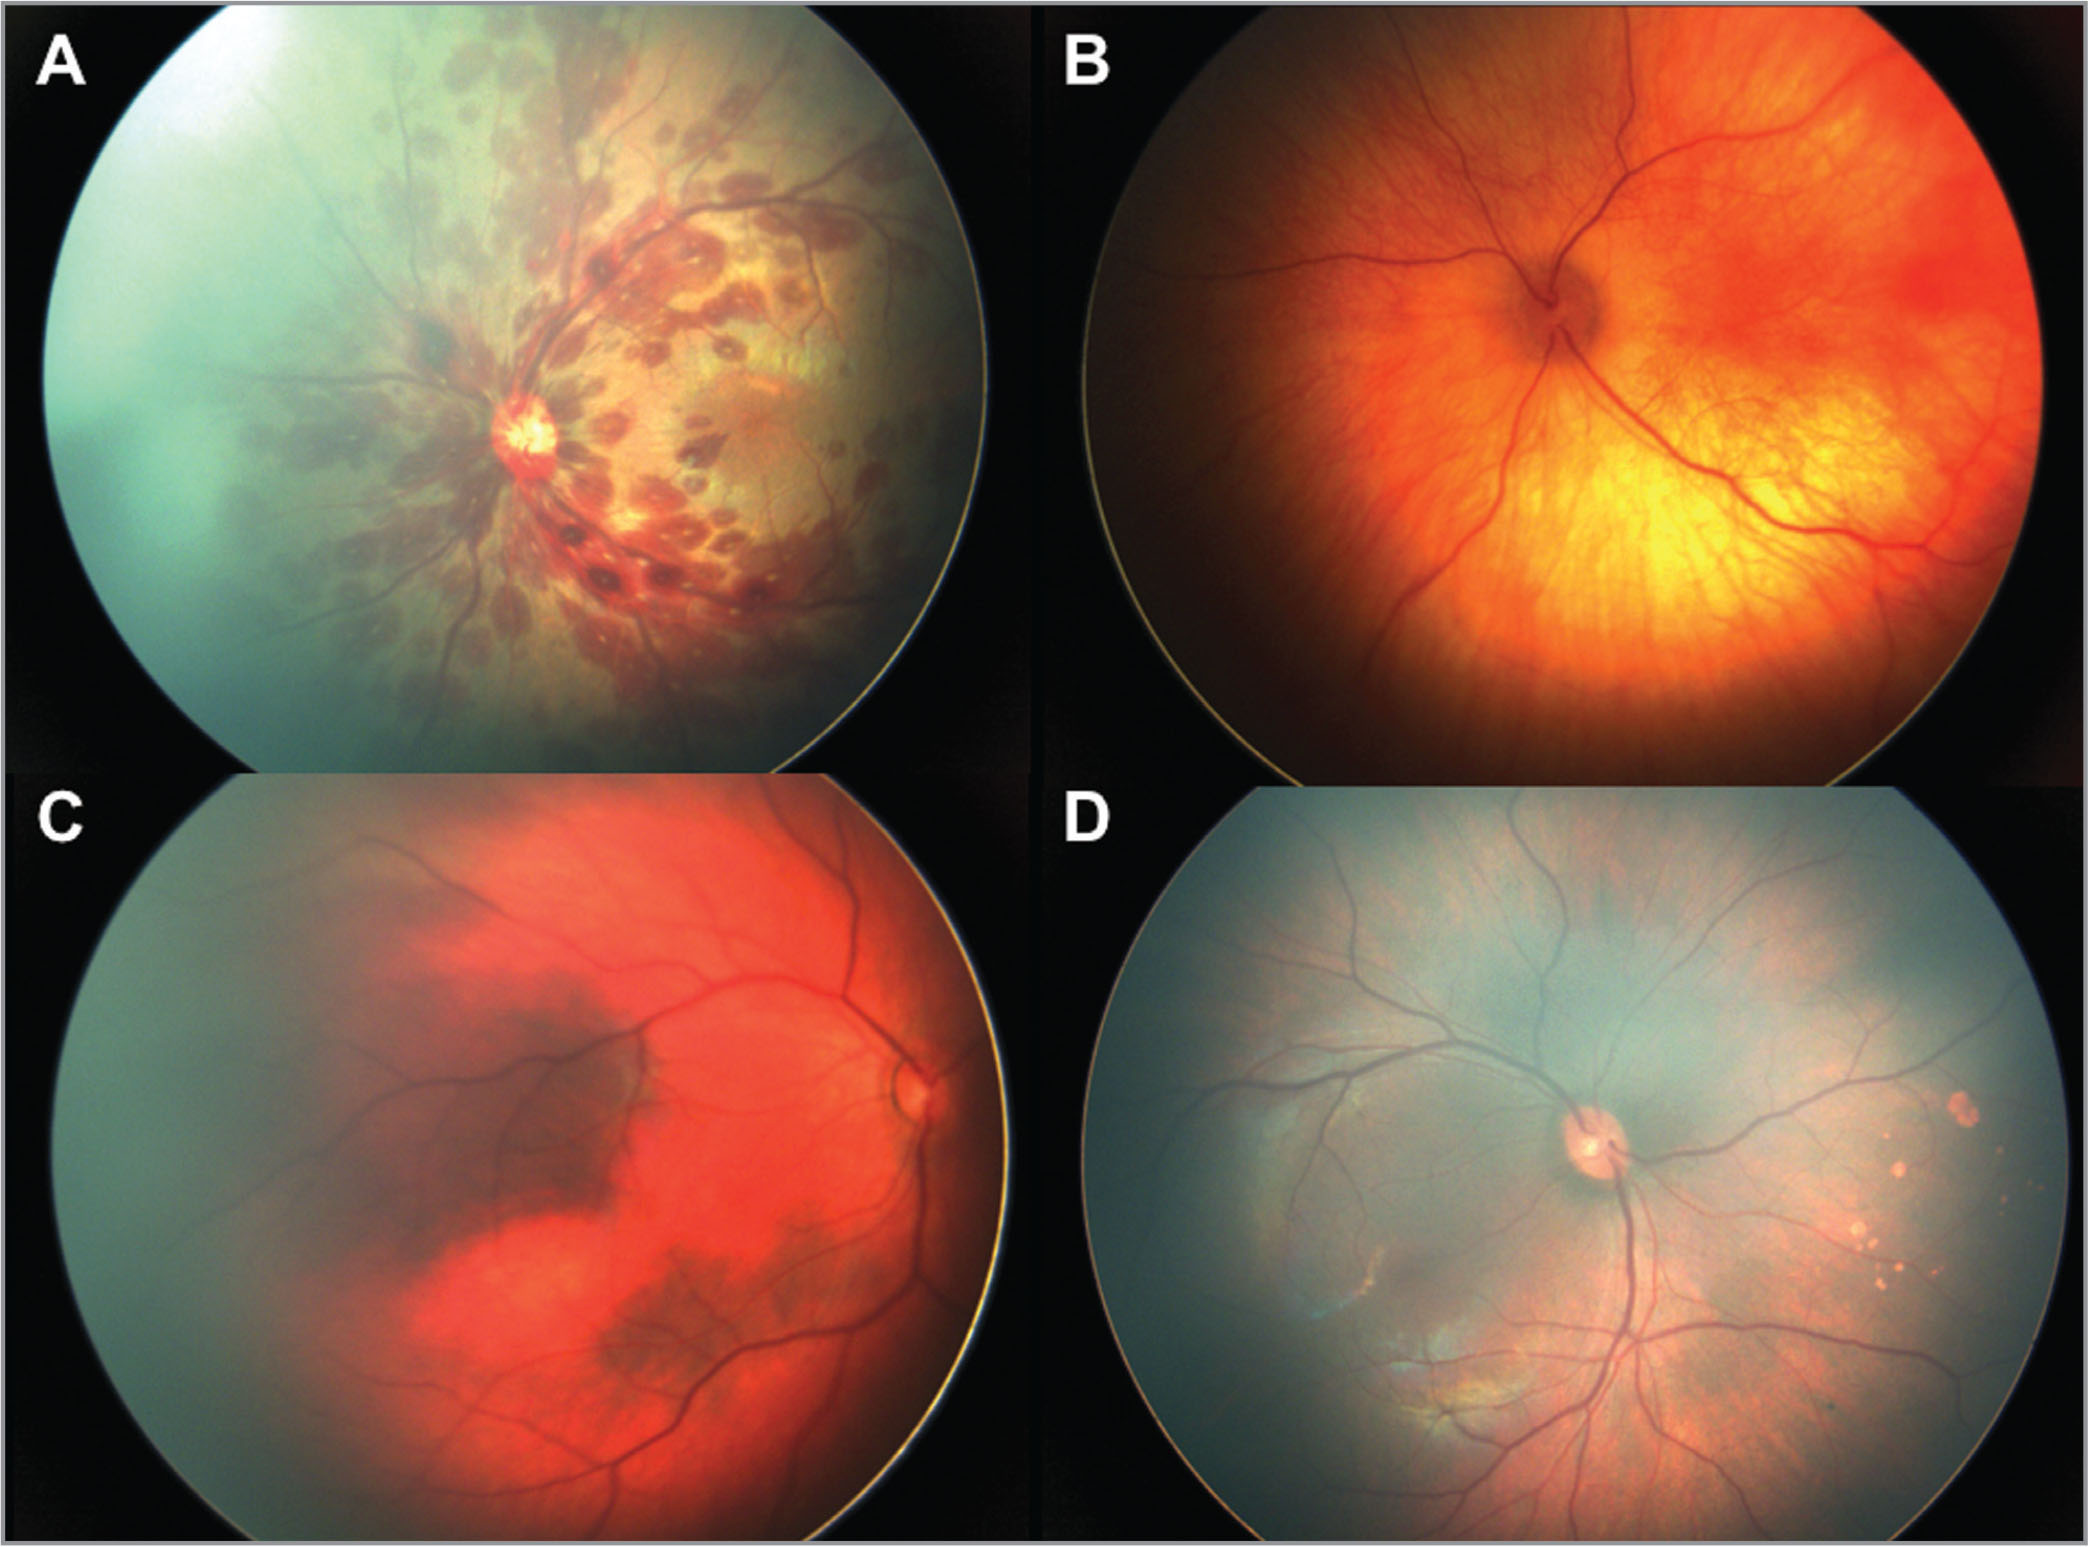 Abnormal posterior segment findings. (A) Extensive white-centered extrafoveal hemorrhages, subretinal foveal hemorrhage, and flame hemorrhages; (B) albinotic appearing retina; (C) choroidal pigmentation; and (D) nasal polar bear tracks